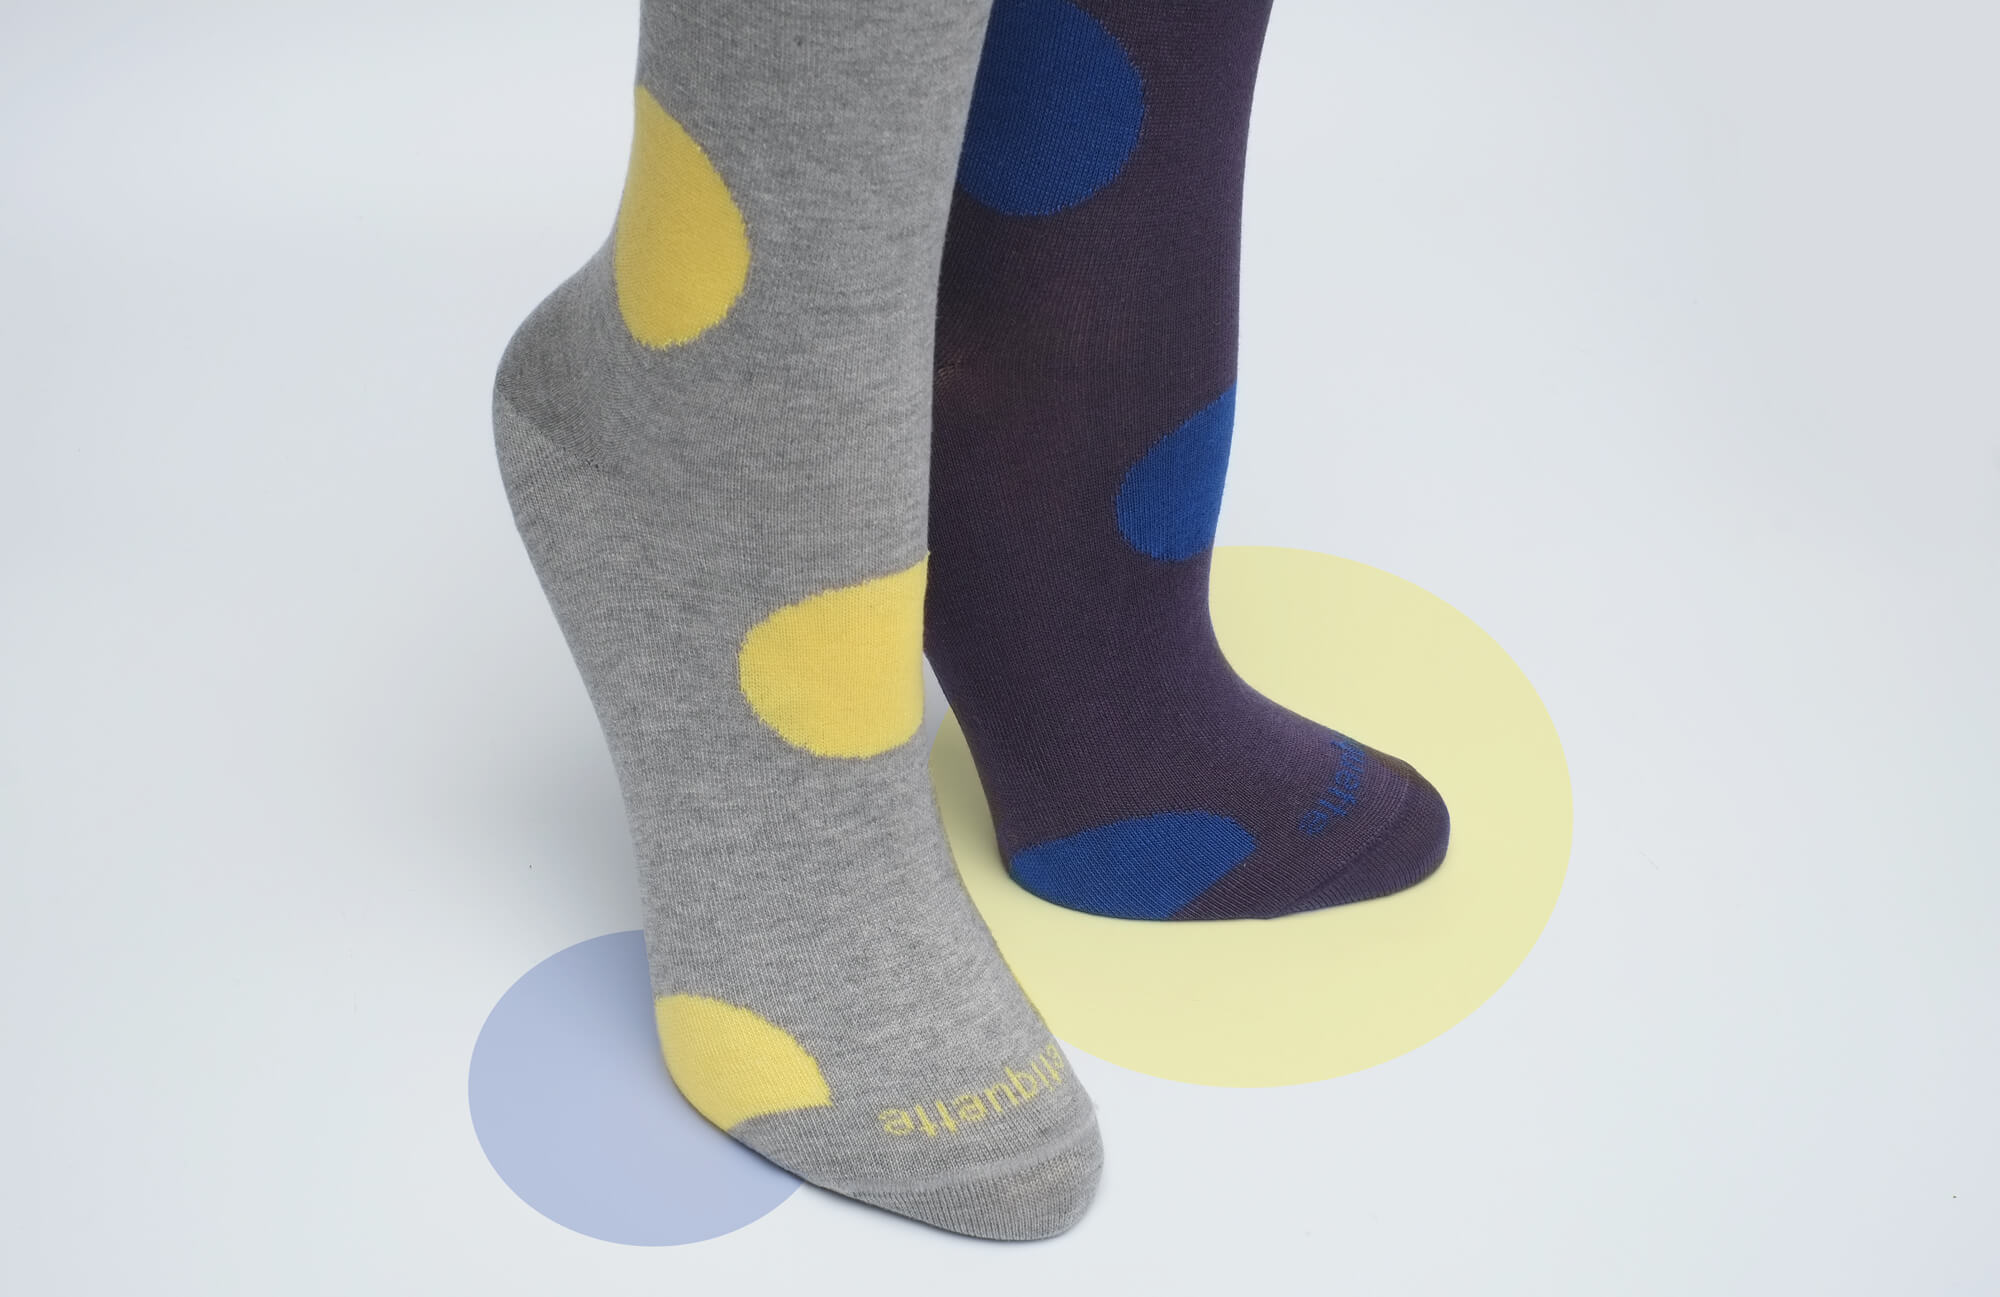 women's fashion socks with fun and colorful patterns  – Etiquette Clothiers